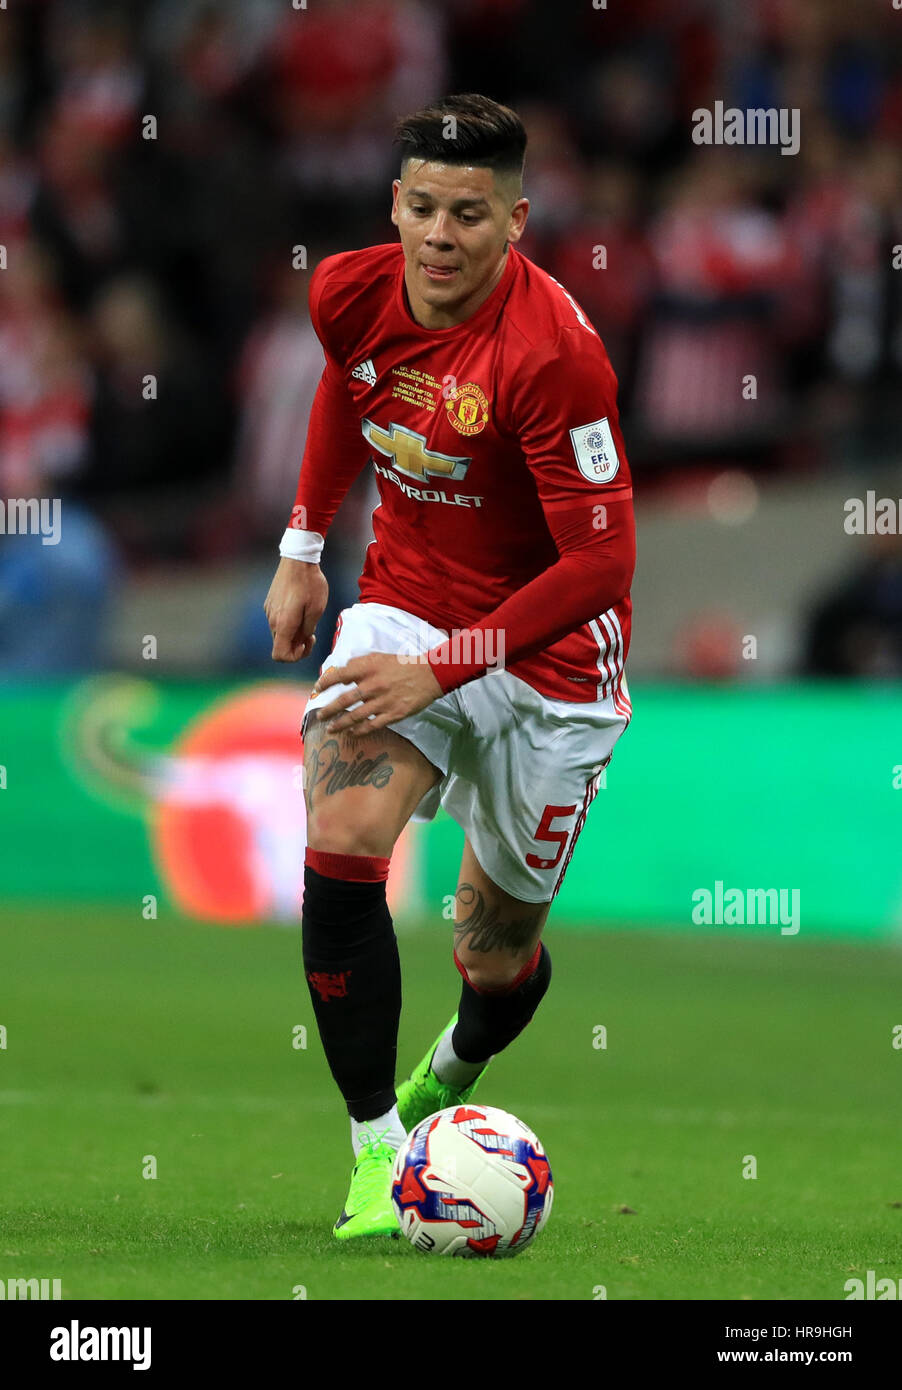 Manchester United S Marcos Rojo Stock Alamy